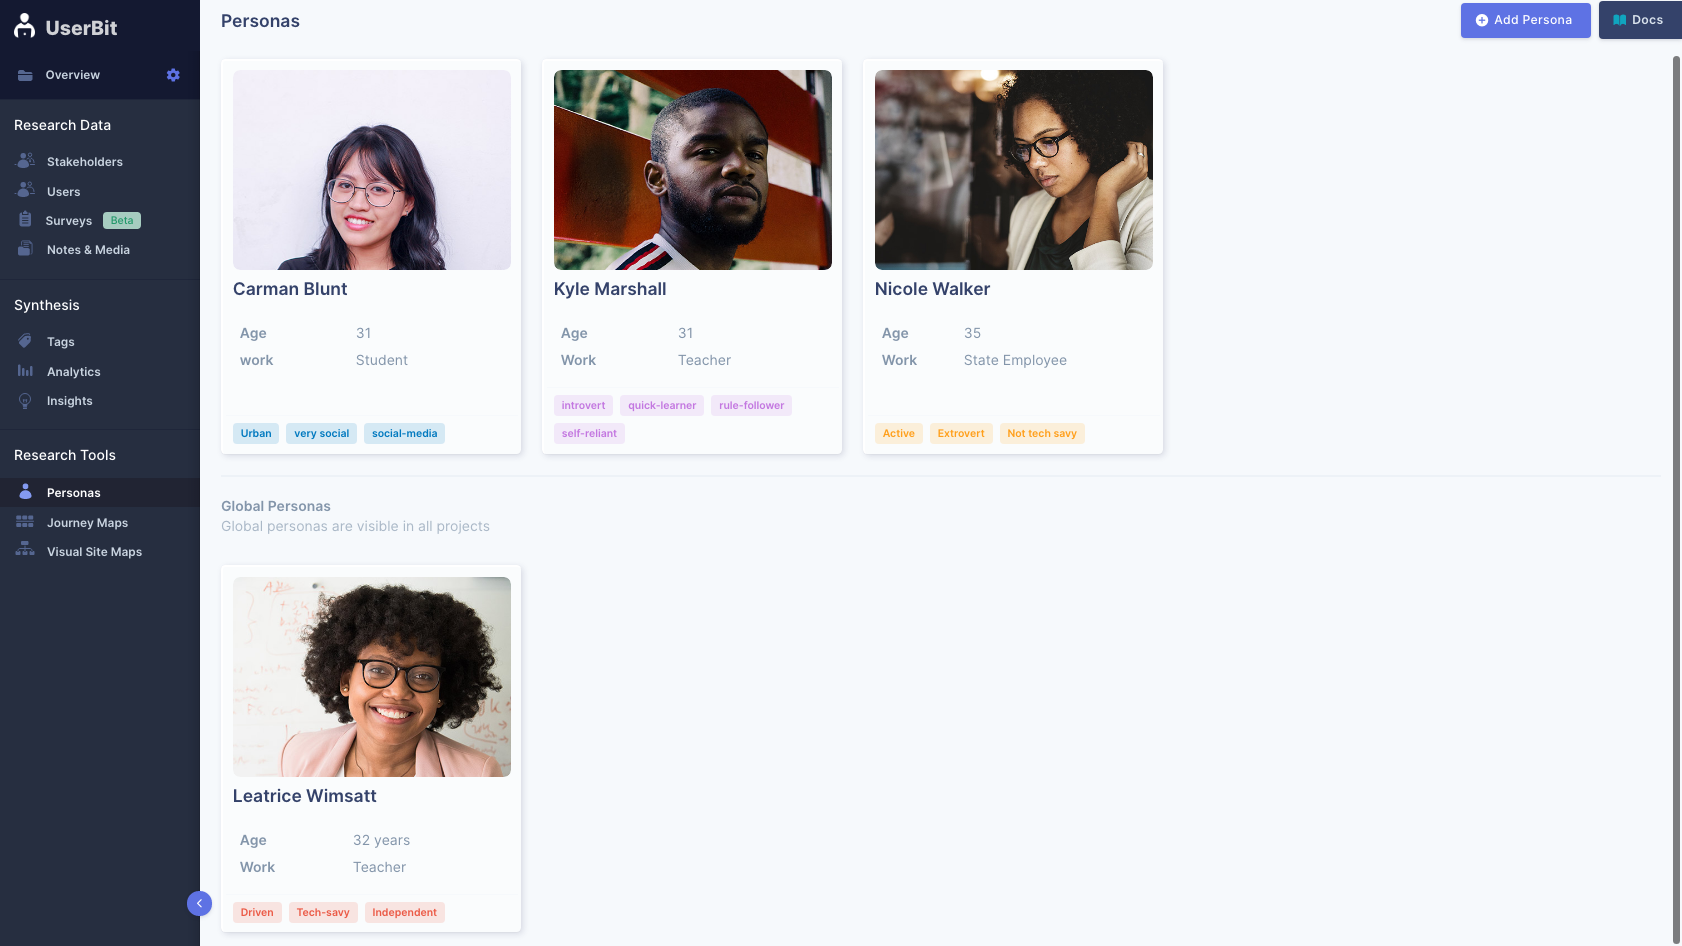 Global personas are automatically visible in all projects on UserBit